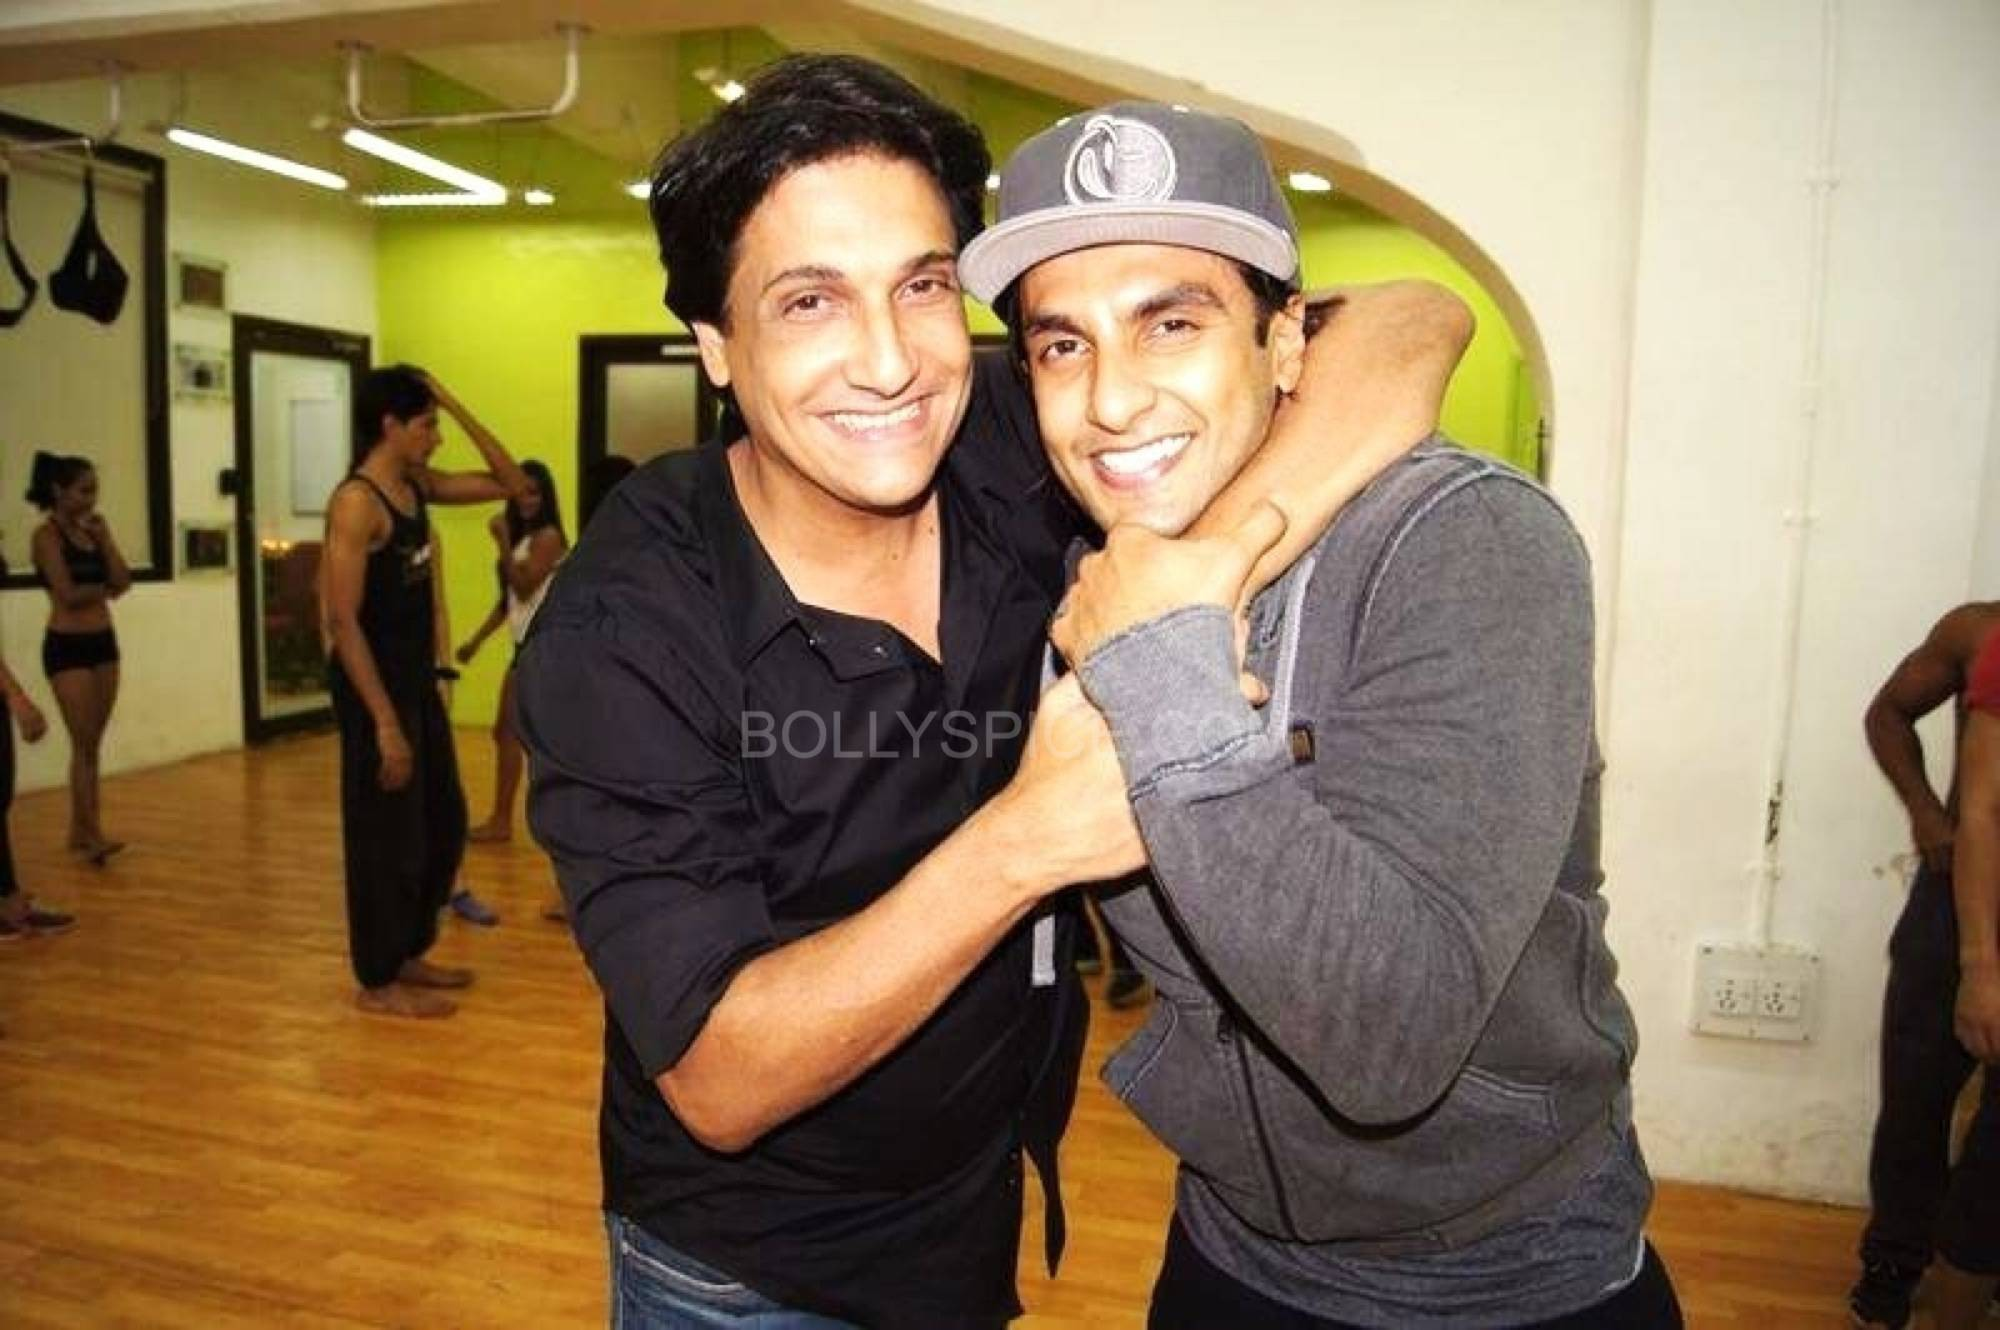 iifa shiamakoniffawards2 Shiamak Davar gives us the scoop as he is ready to Rock at IIFA with performances by Hrithik, Shahid, Madhuri, Deepika, Ranveer and Siddharth